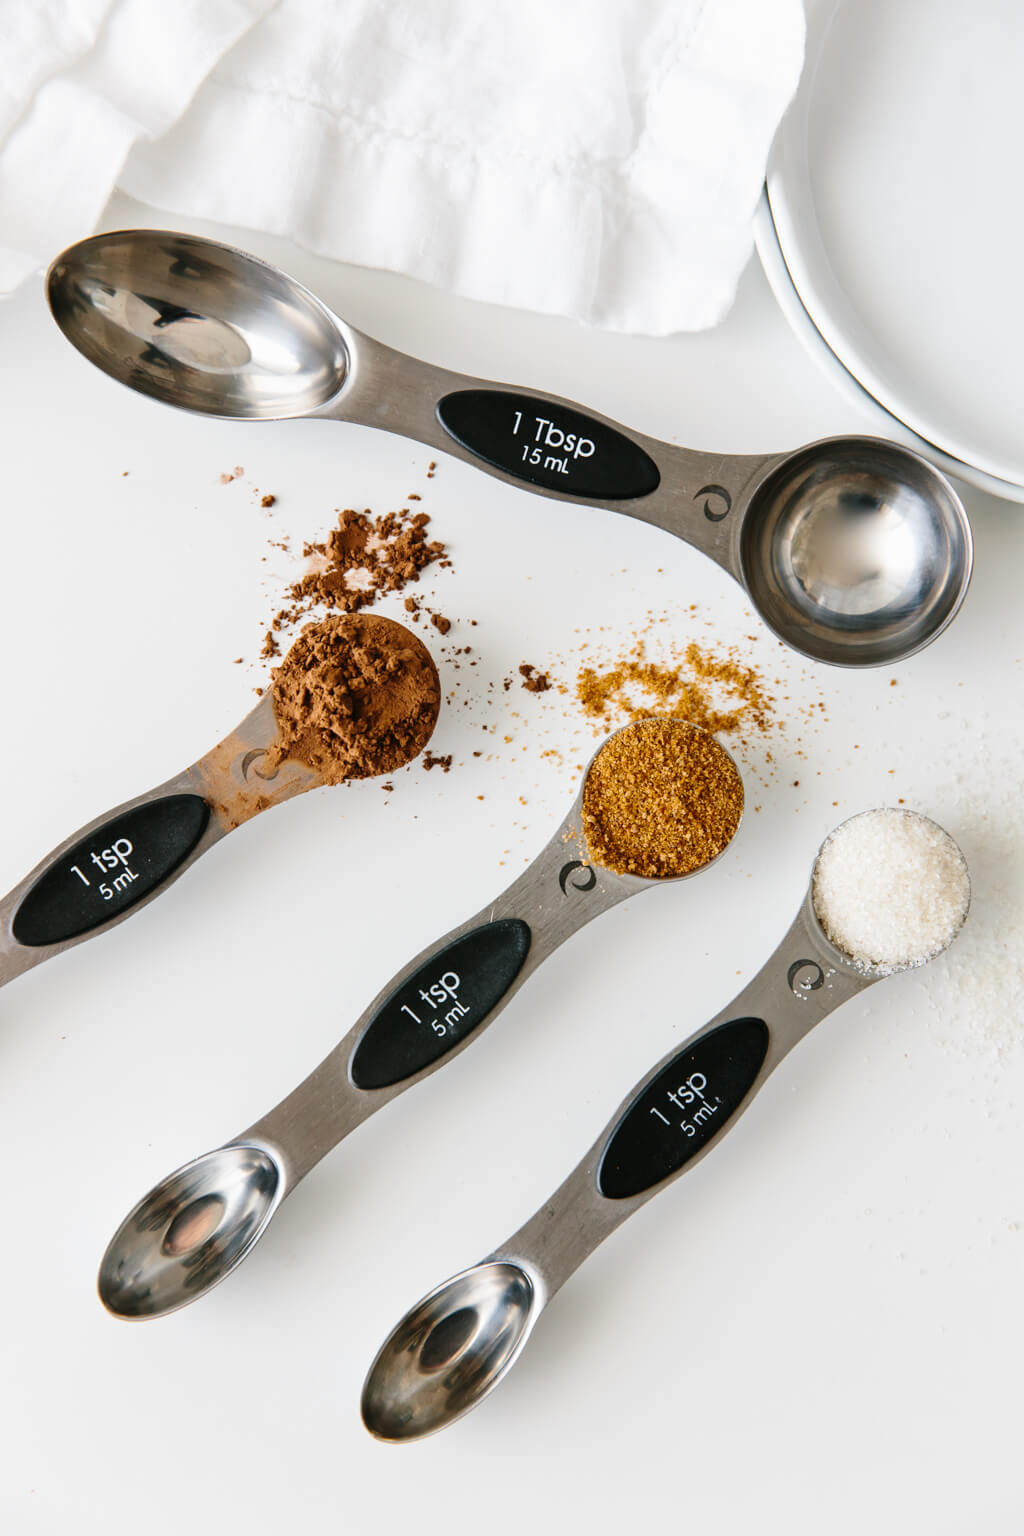 How many teaspoons in a tablespoon? The answer might surprise you. Did you know this simple question plagues even the best home cooks? And yet it's an important measurement to remember, especially when it comes to baking.